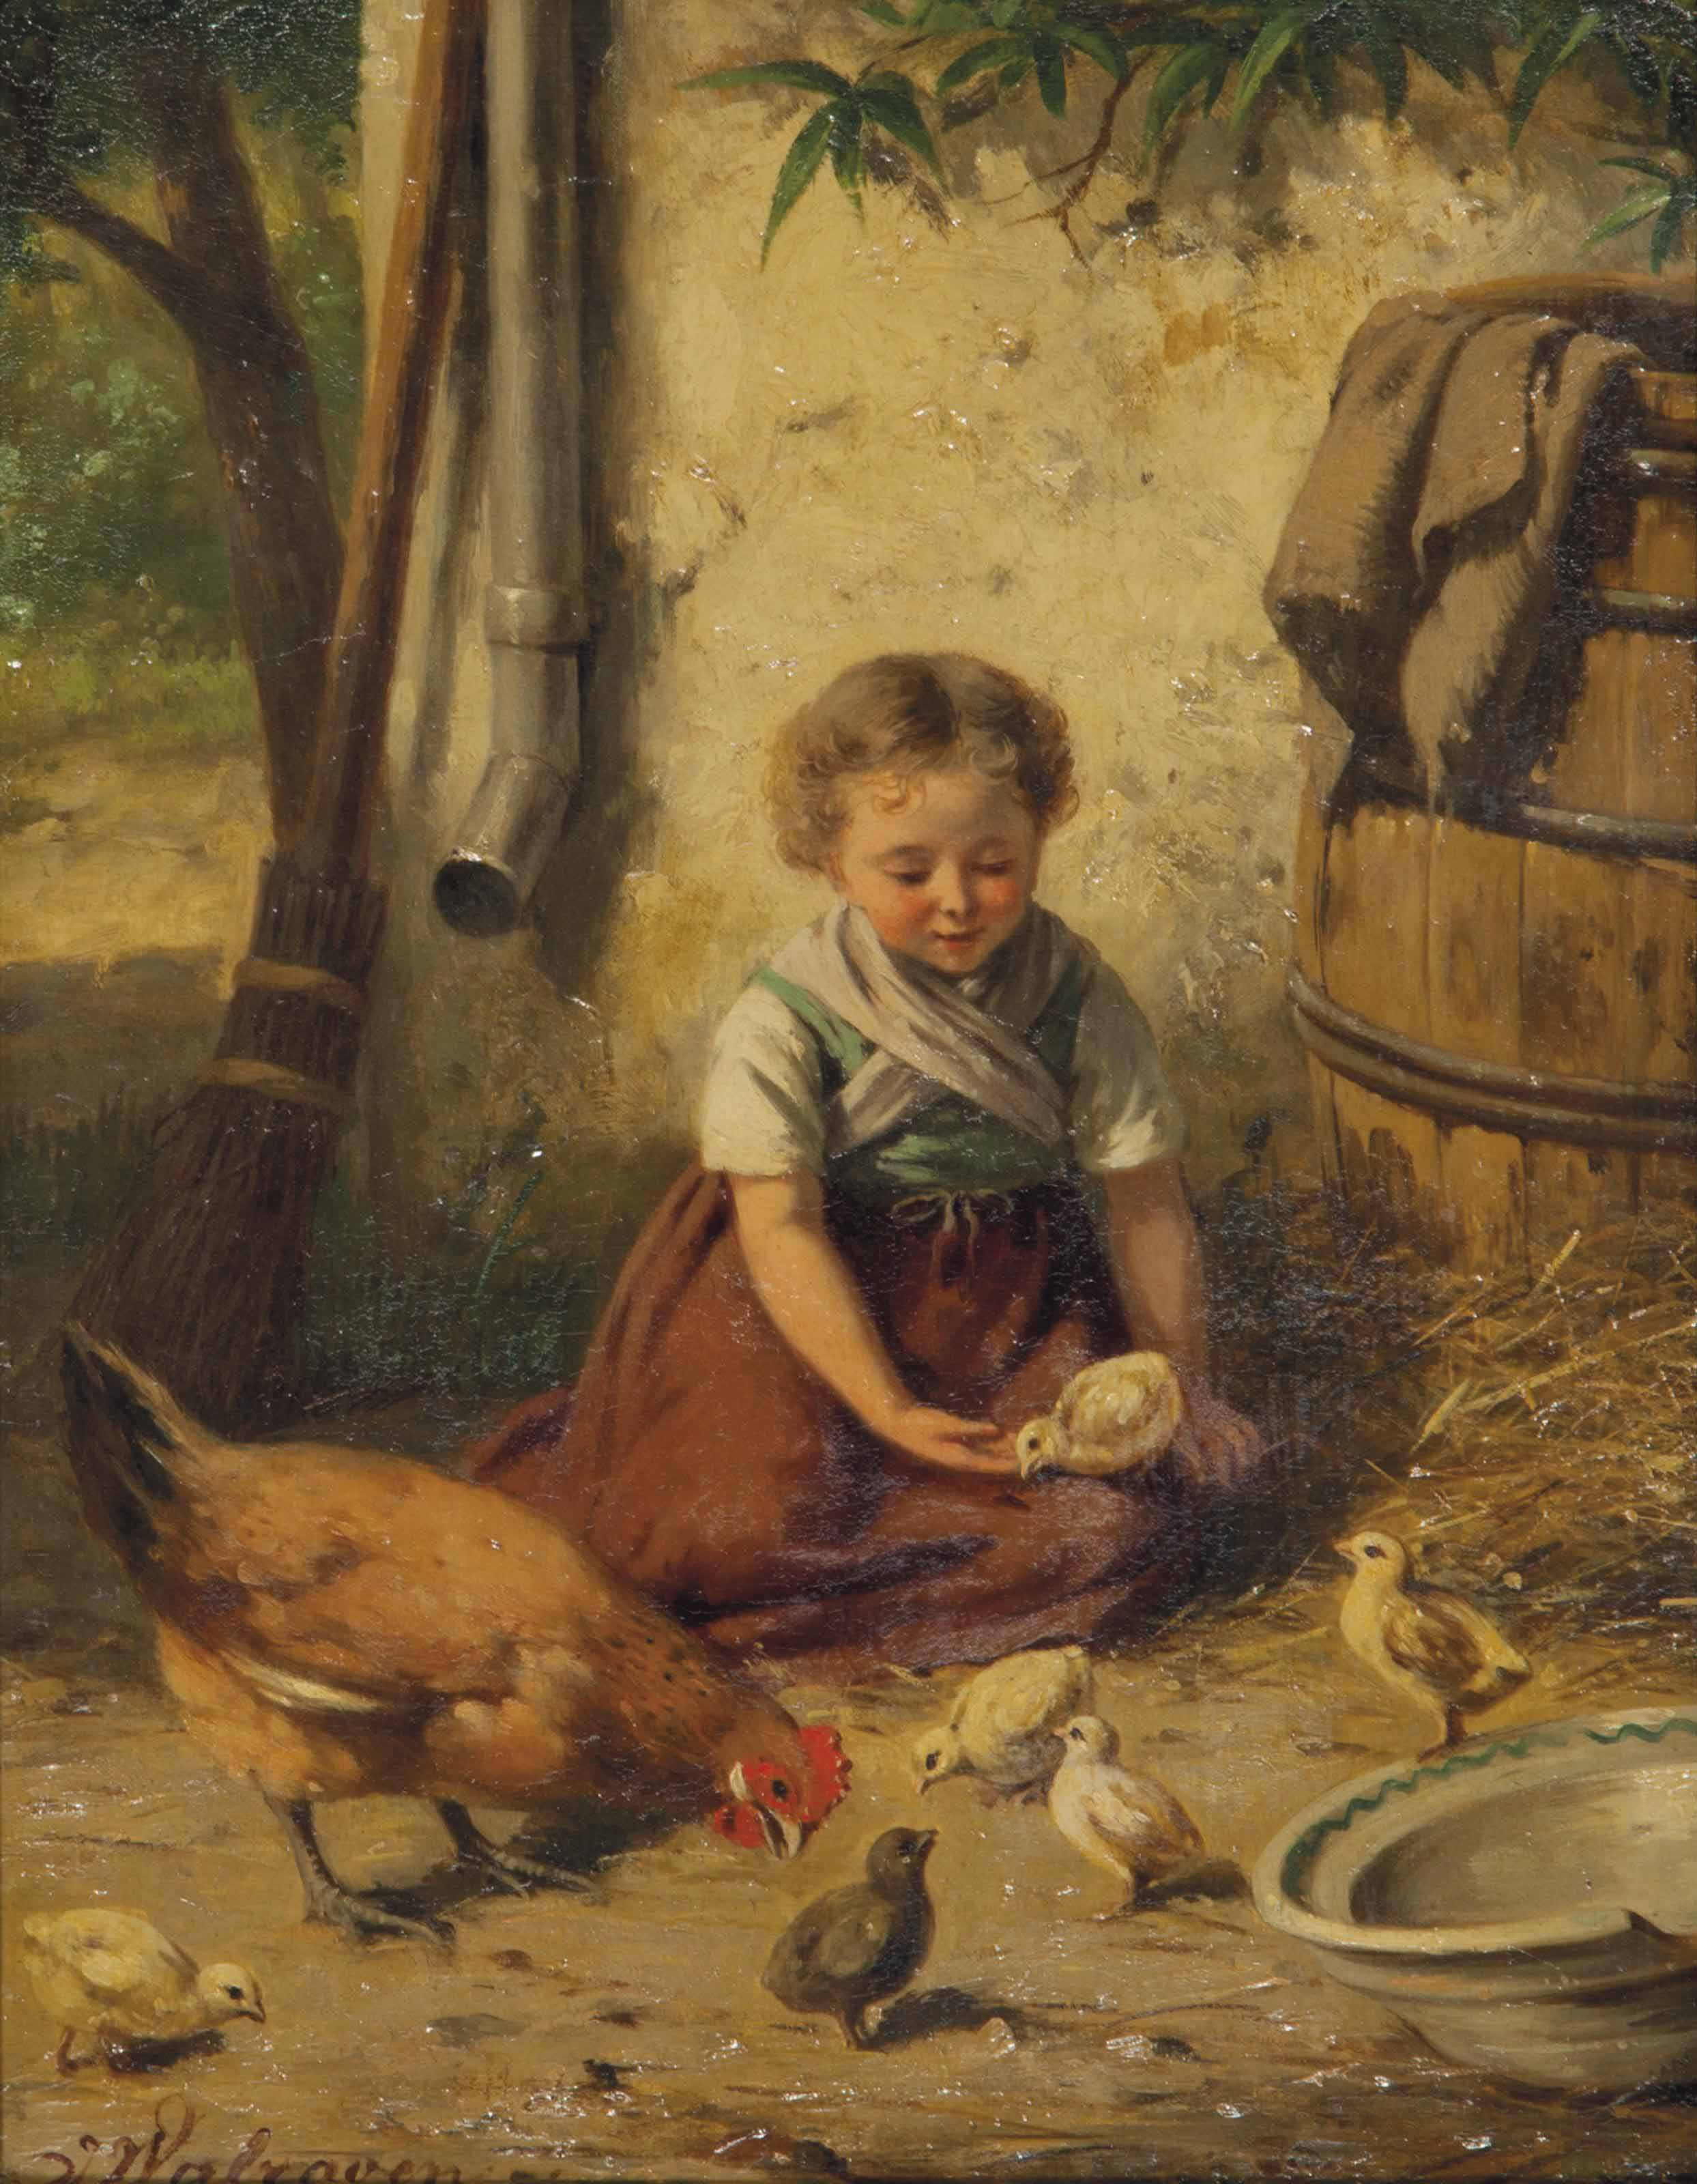 A young girl playing with chickens